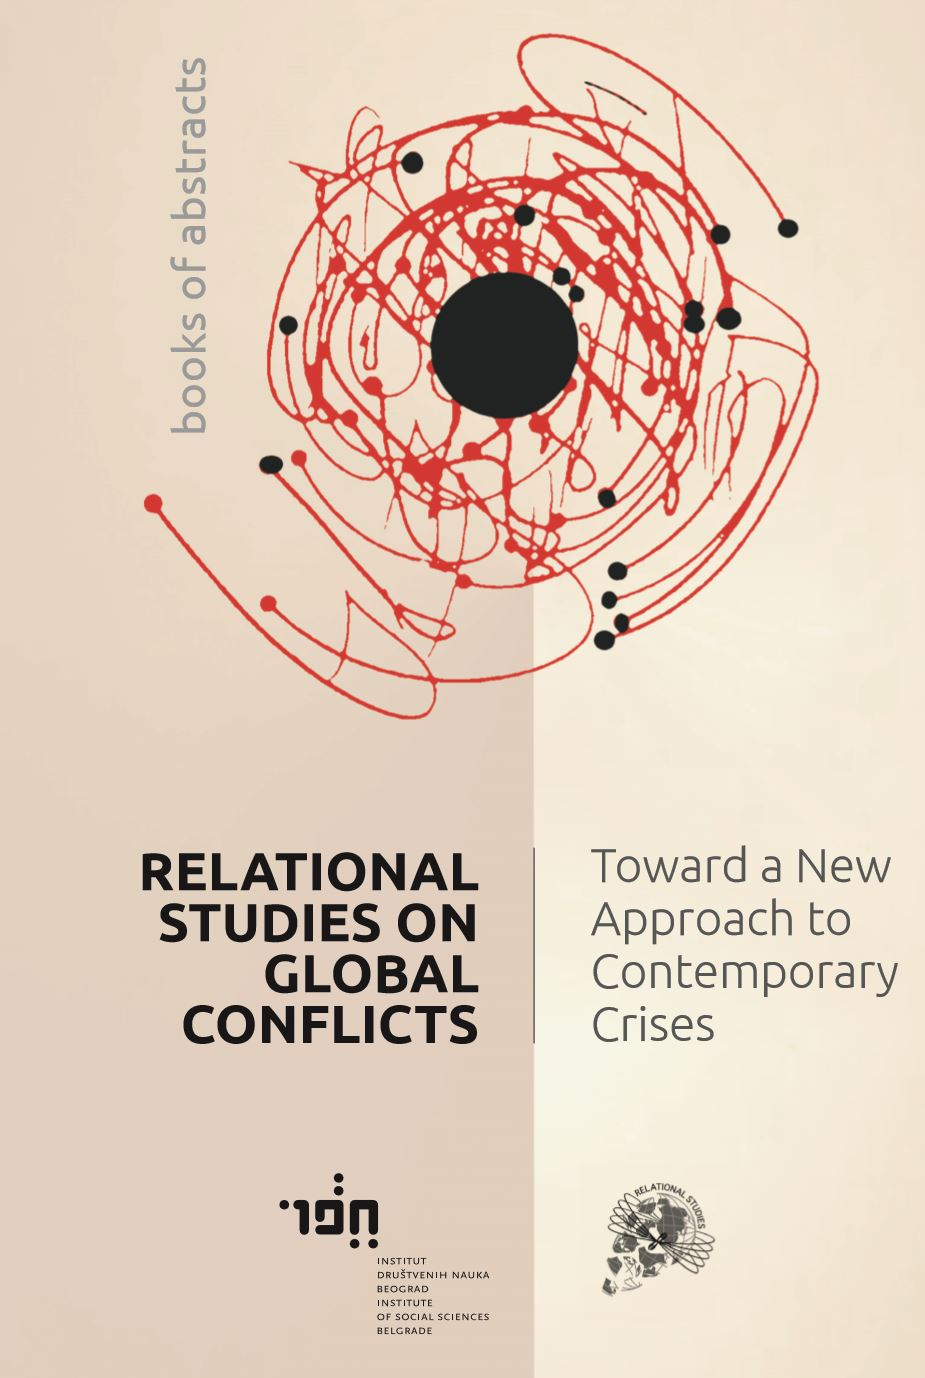 International Conference RELATIONAL STUDIES ON GLOBAL CONFLICTS: TOWARD A NEW APPROACH TO CONTEMPORARY CRISES